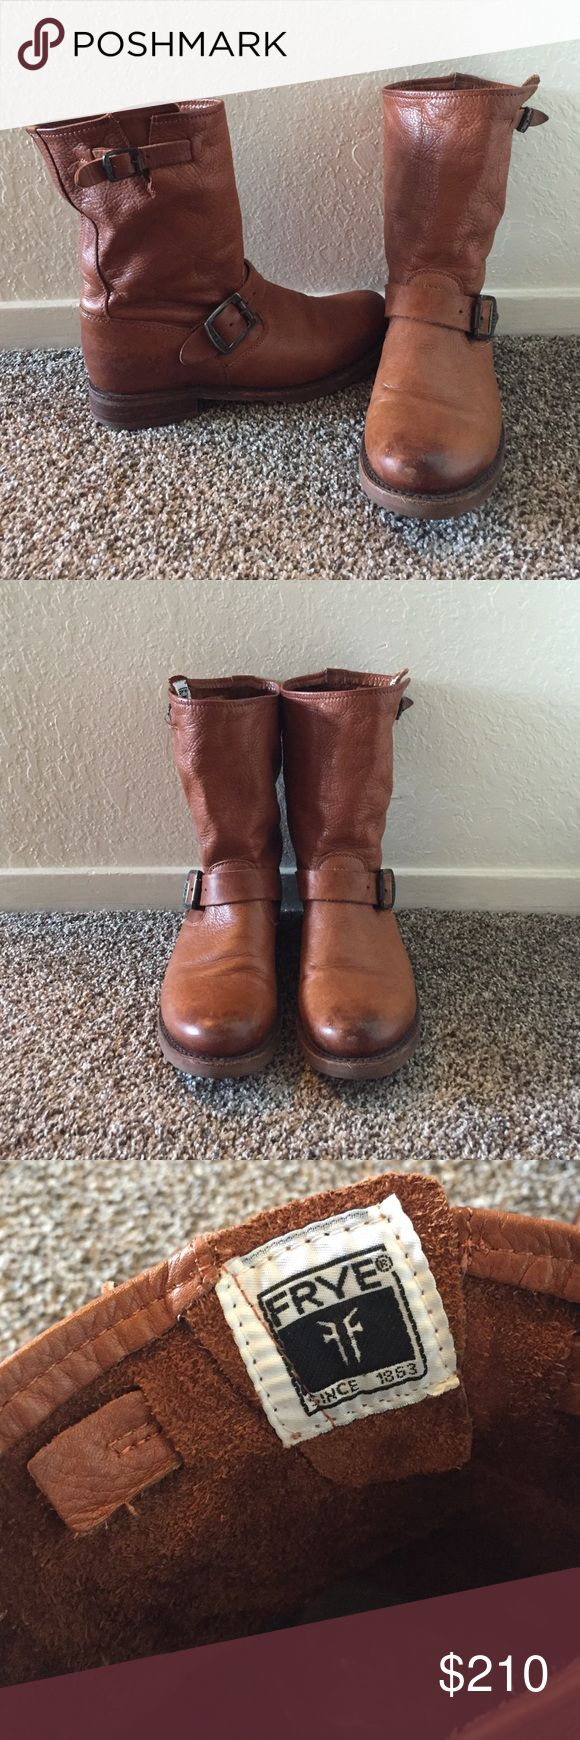 Frye Veronica short boots Beautiful leather Frye Veronica short boots in cognac. These boots are extremely comfortable and in great condition. Only worn a few times for short periods. These boots look great with jeans, skirts, and dresses. These do not come with original box. Frye Shoes